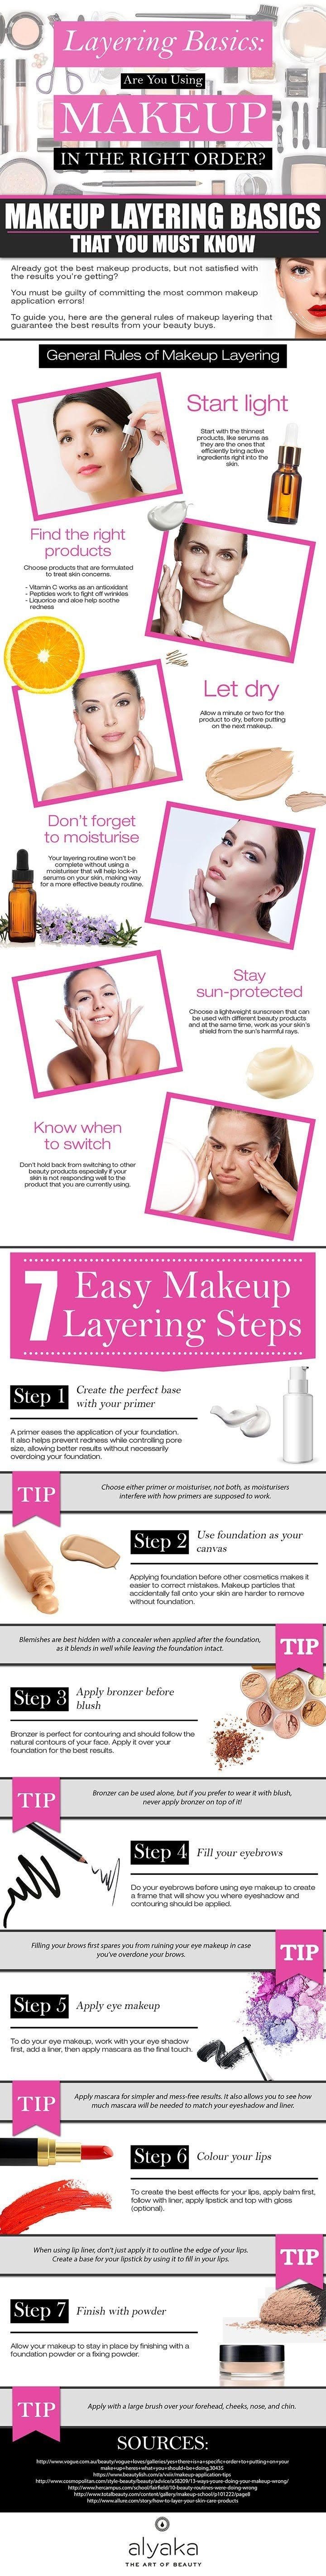 Layering Basics: Are You Using Makeup in the Right Order #Infographic